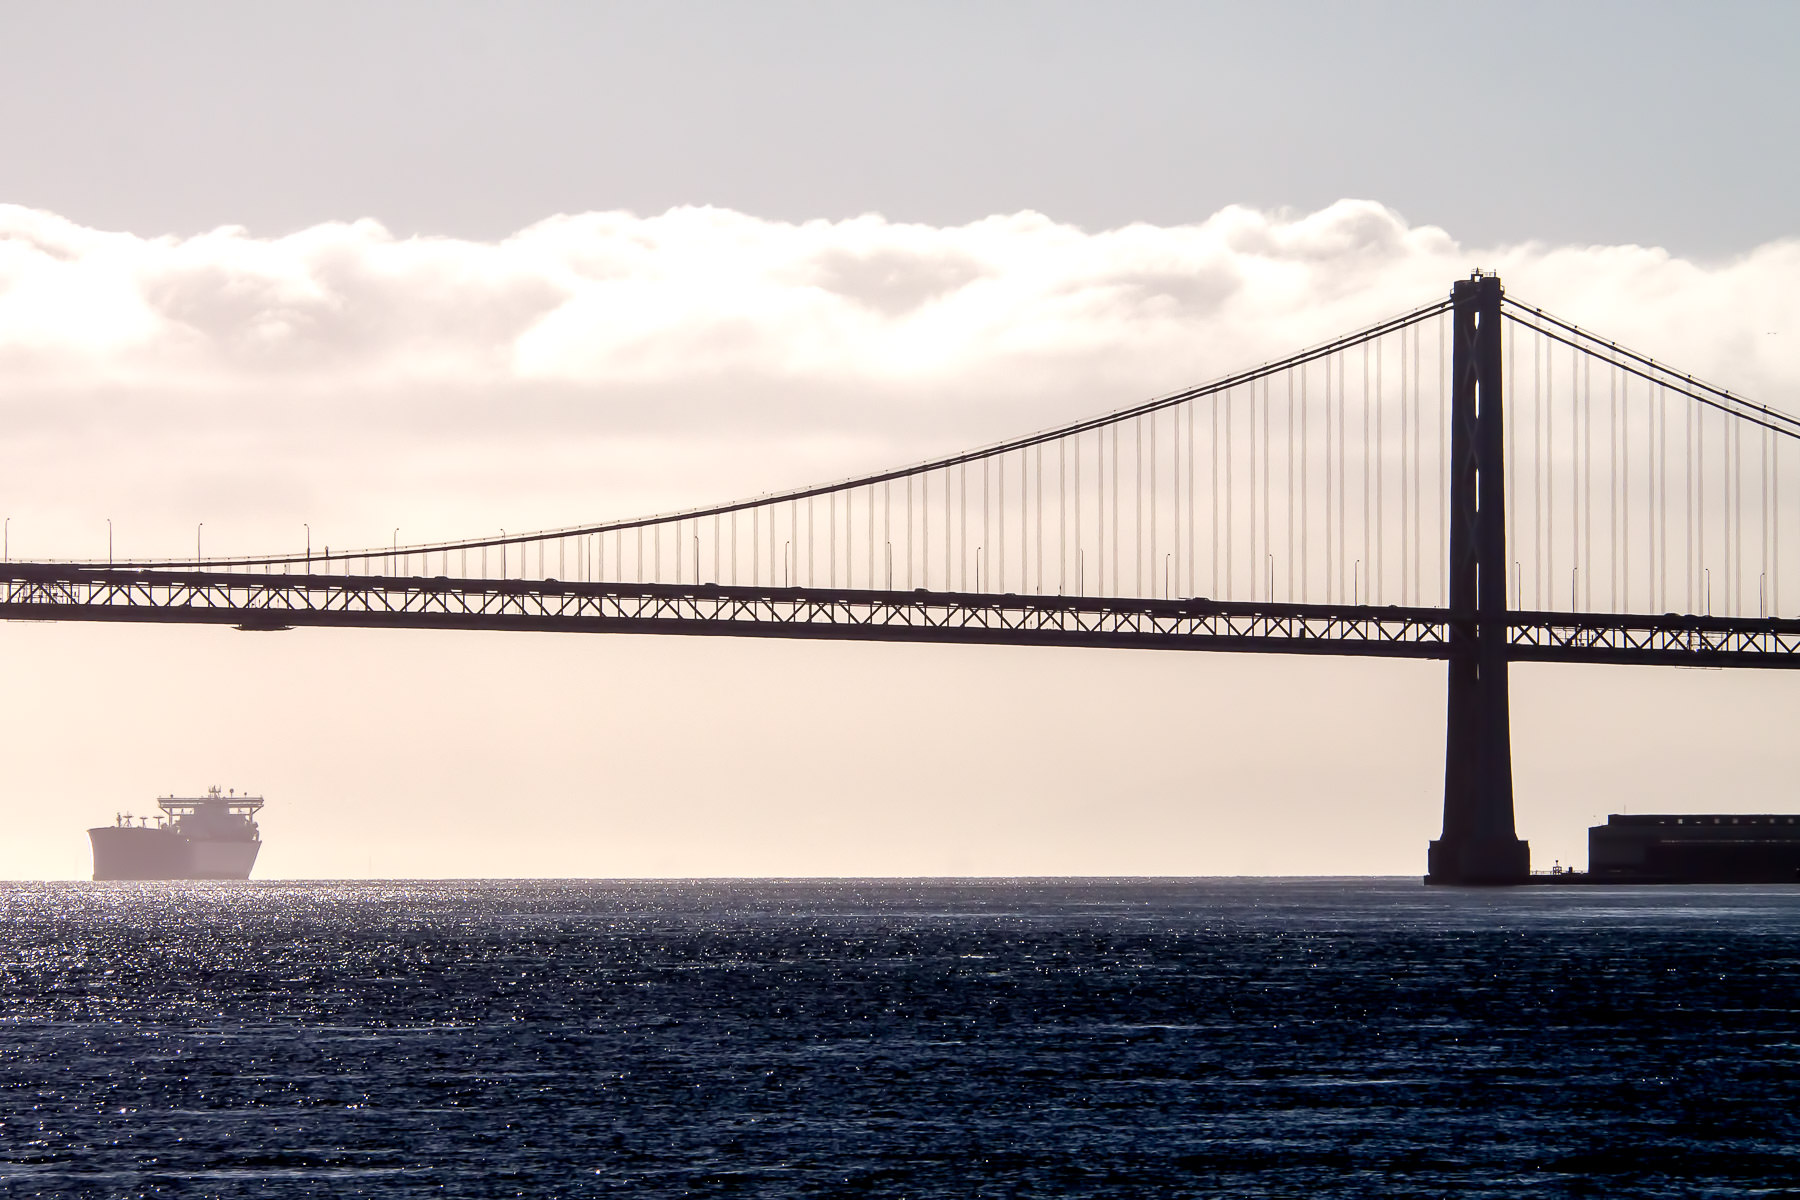 A cargo ship passes under the Golden Gate Bridge on its way to San Francisco Bay in the early morning sunlight.